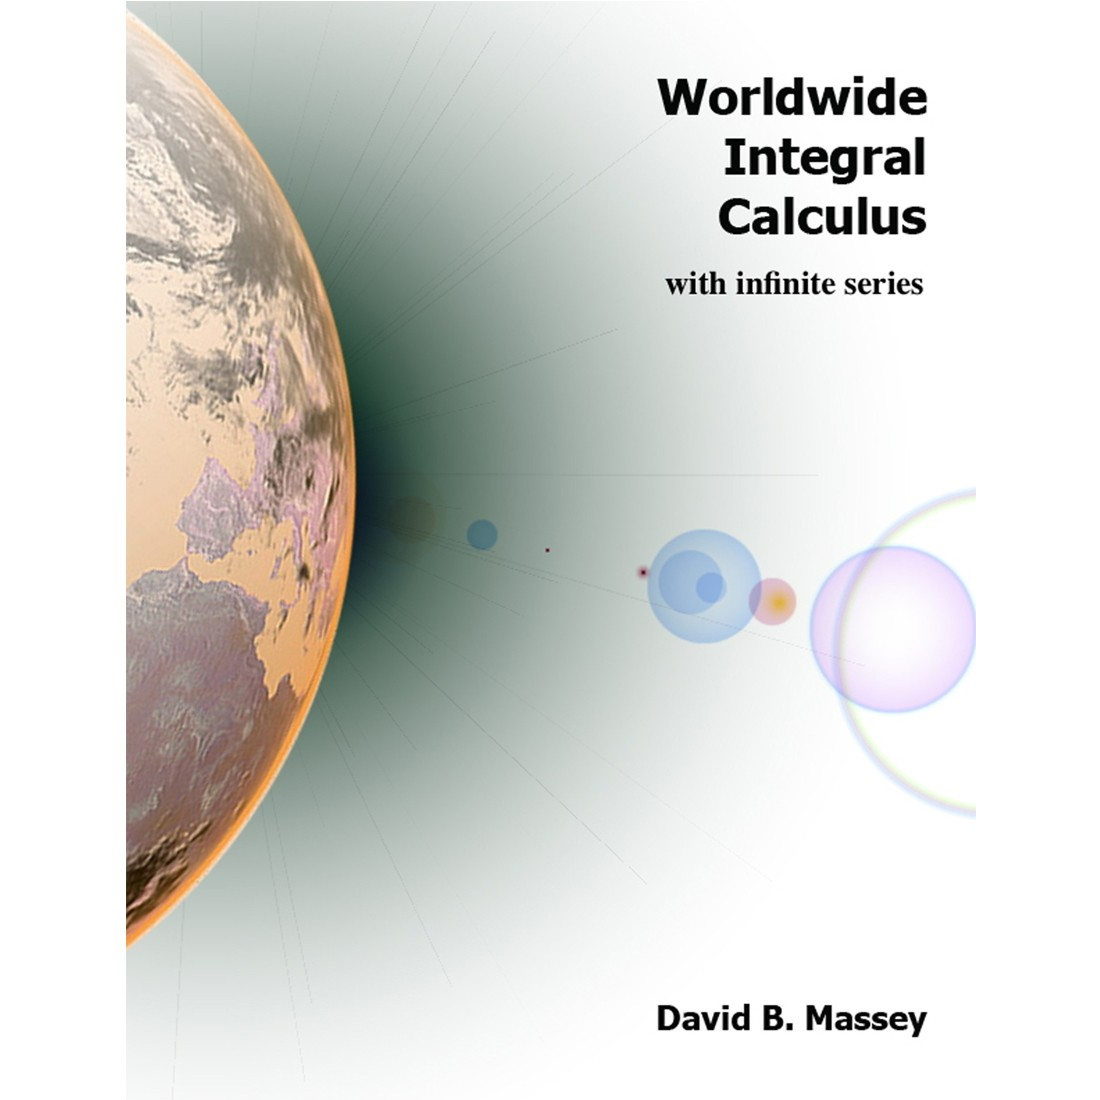 Worldwide Integral Calculus